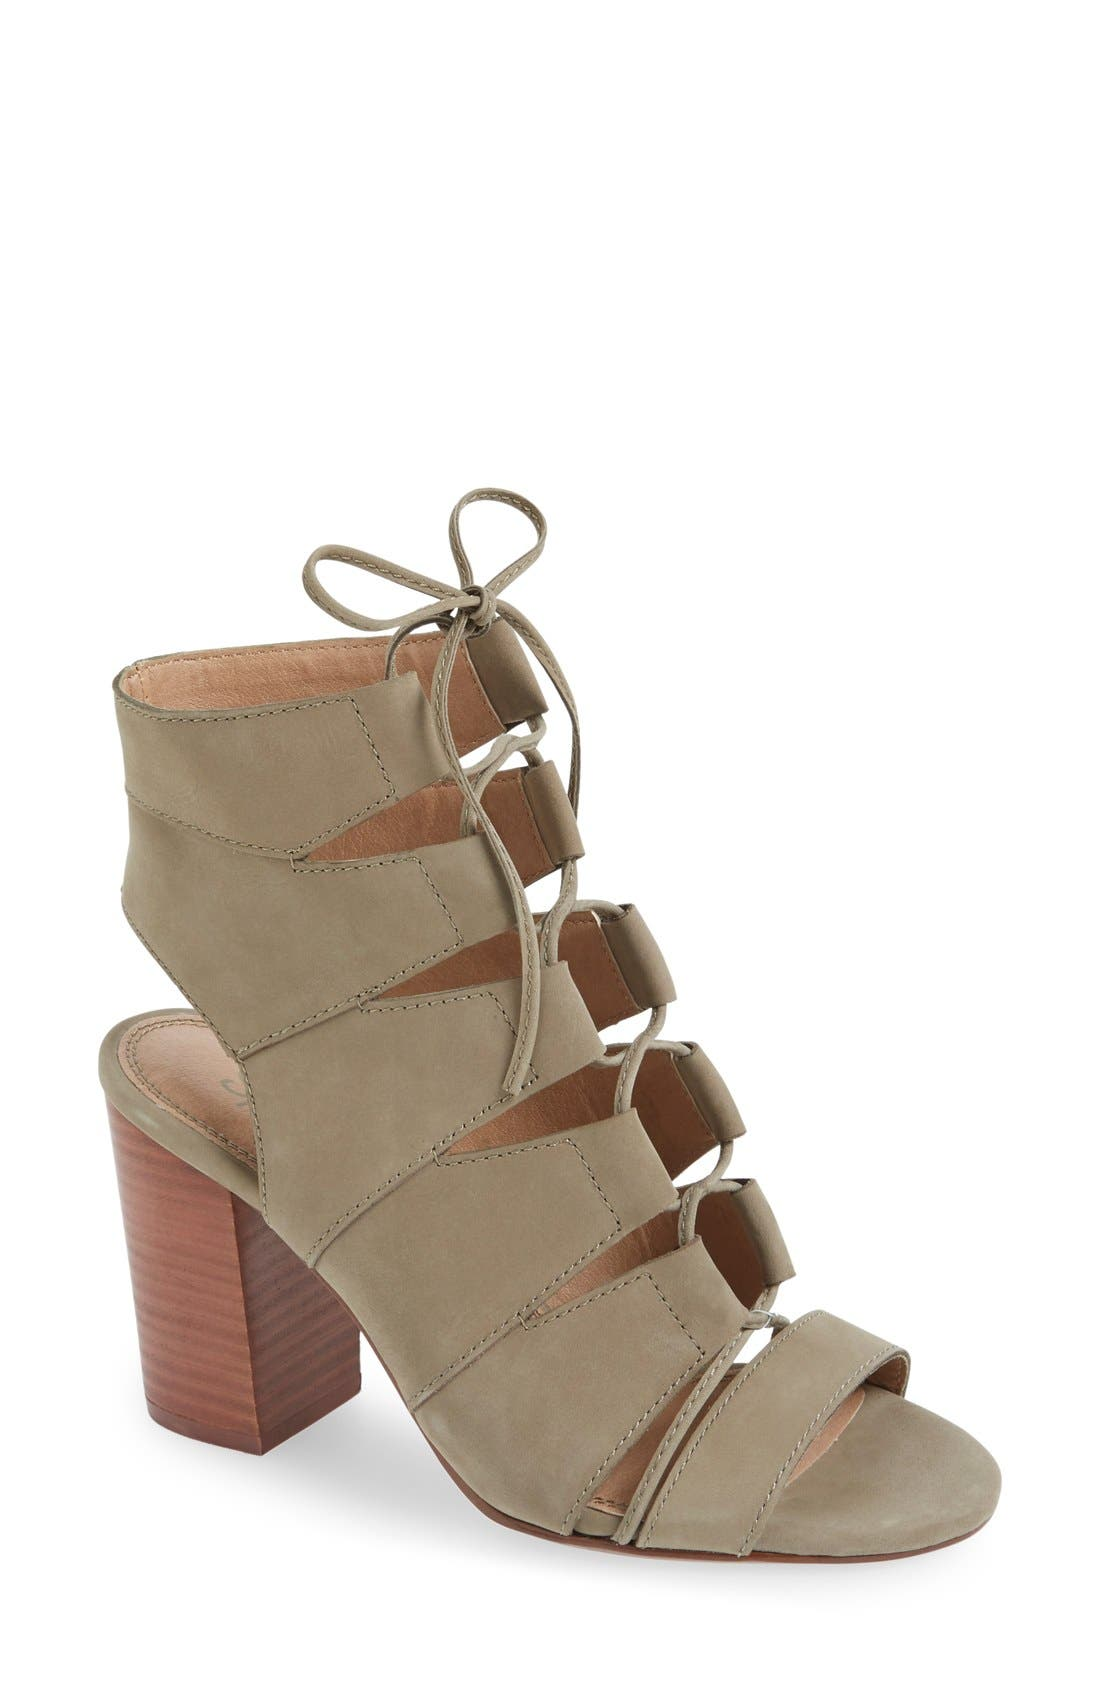 Alternate Image 1 Selected - Splendid 'Banden' Lace-up Sandal (Women)